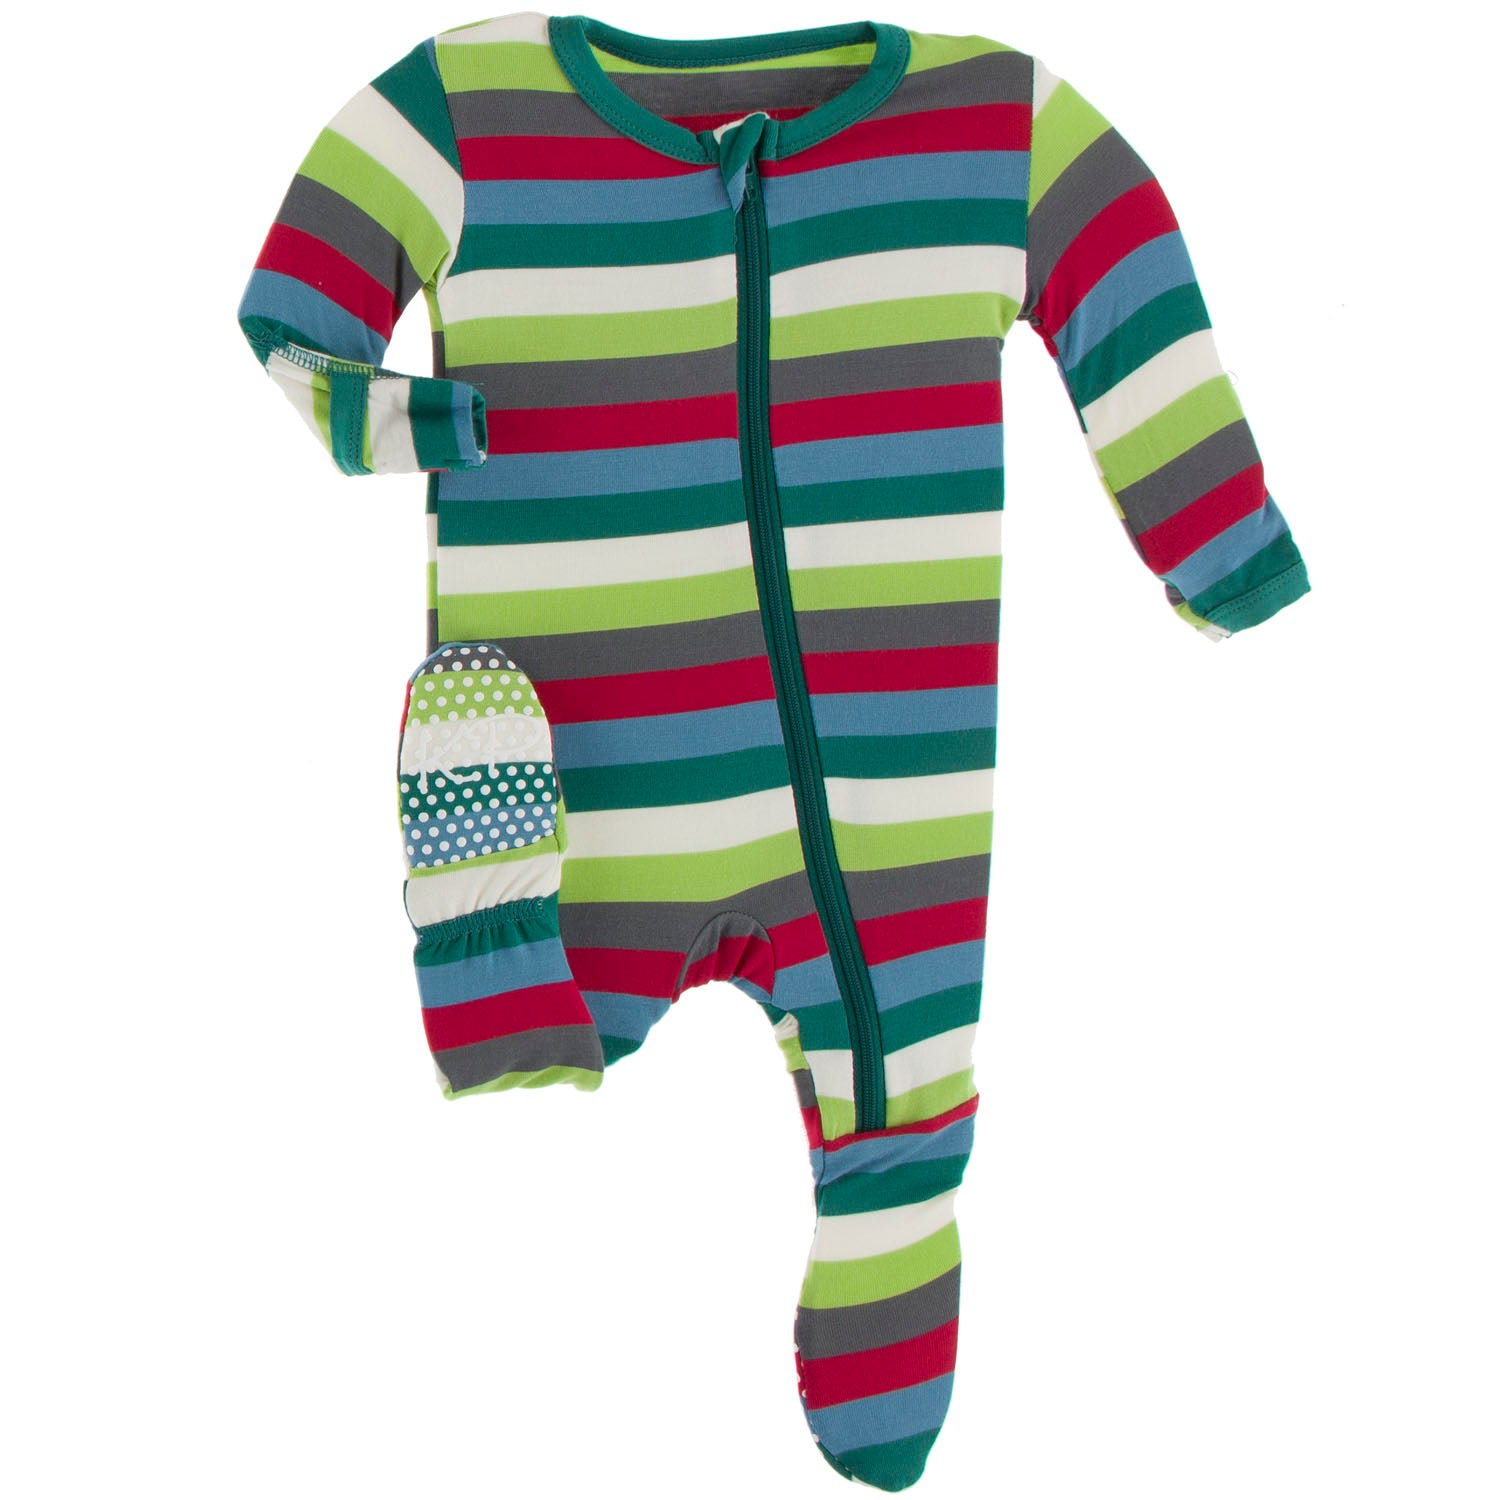 Kickee Pants Footie - 2020 Multi Stripe